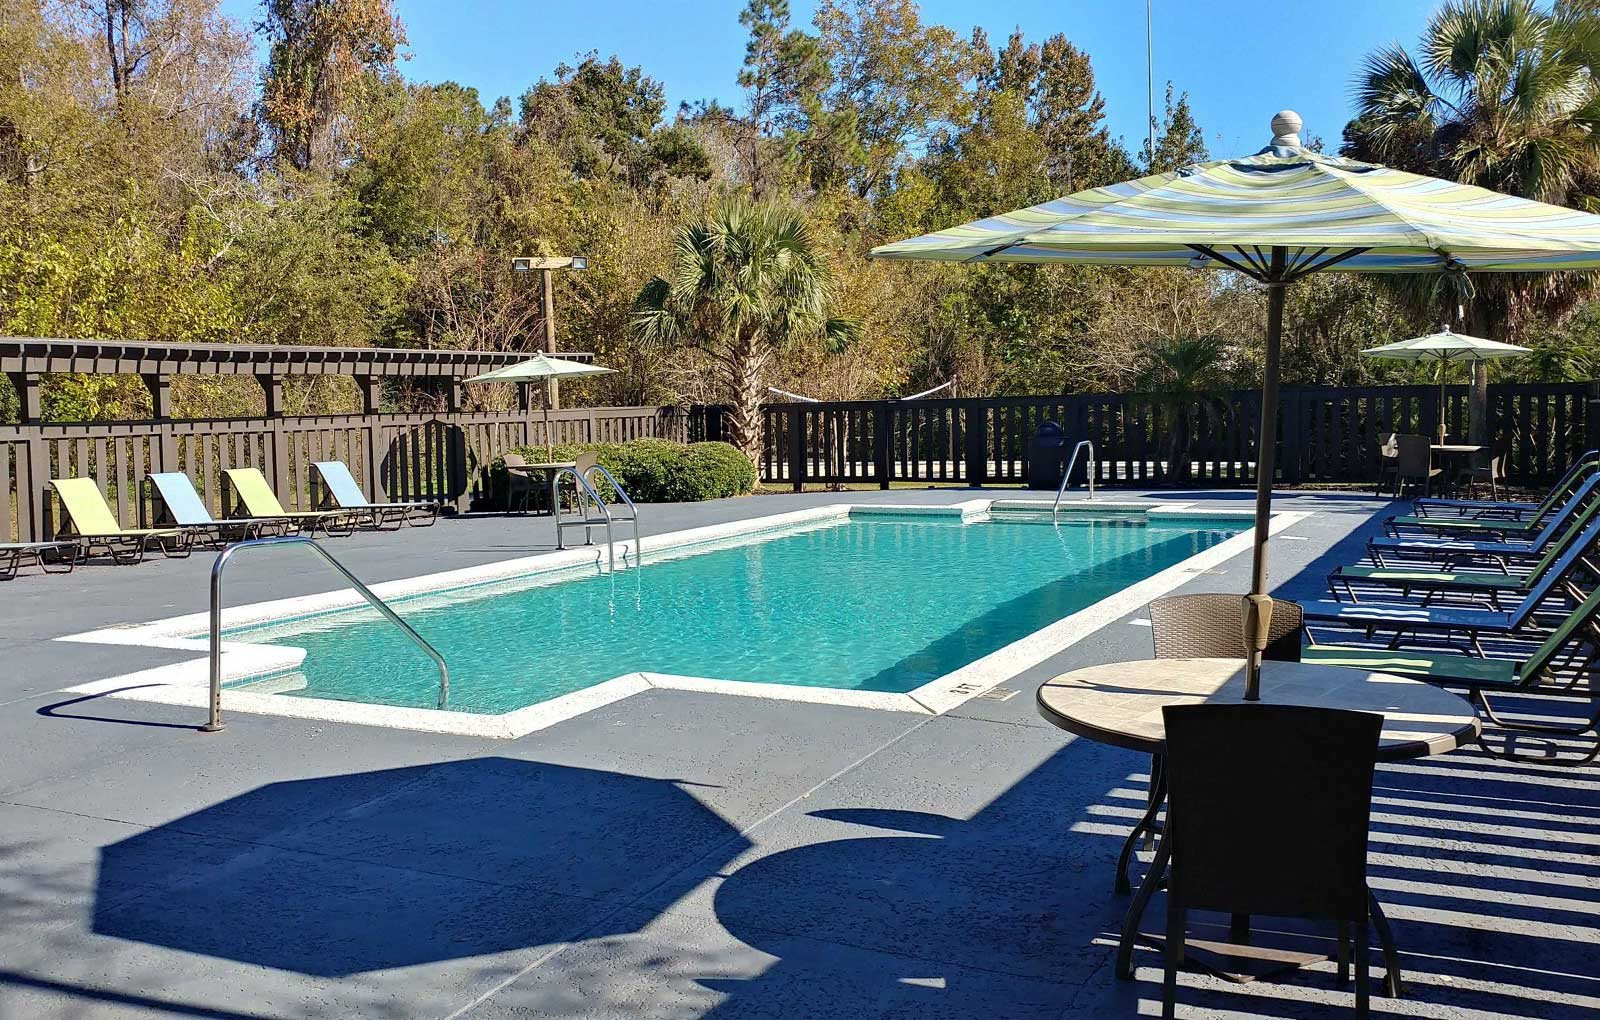 PoolSide Lounge Chairs at Springwood Townhomes Apartments, Tallahassee, FL, 32303